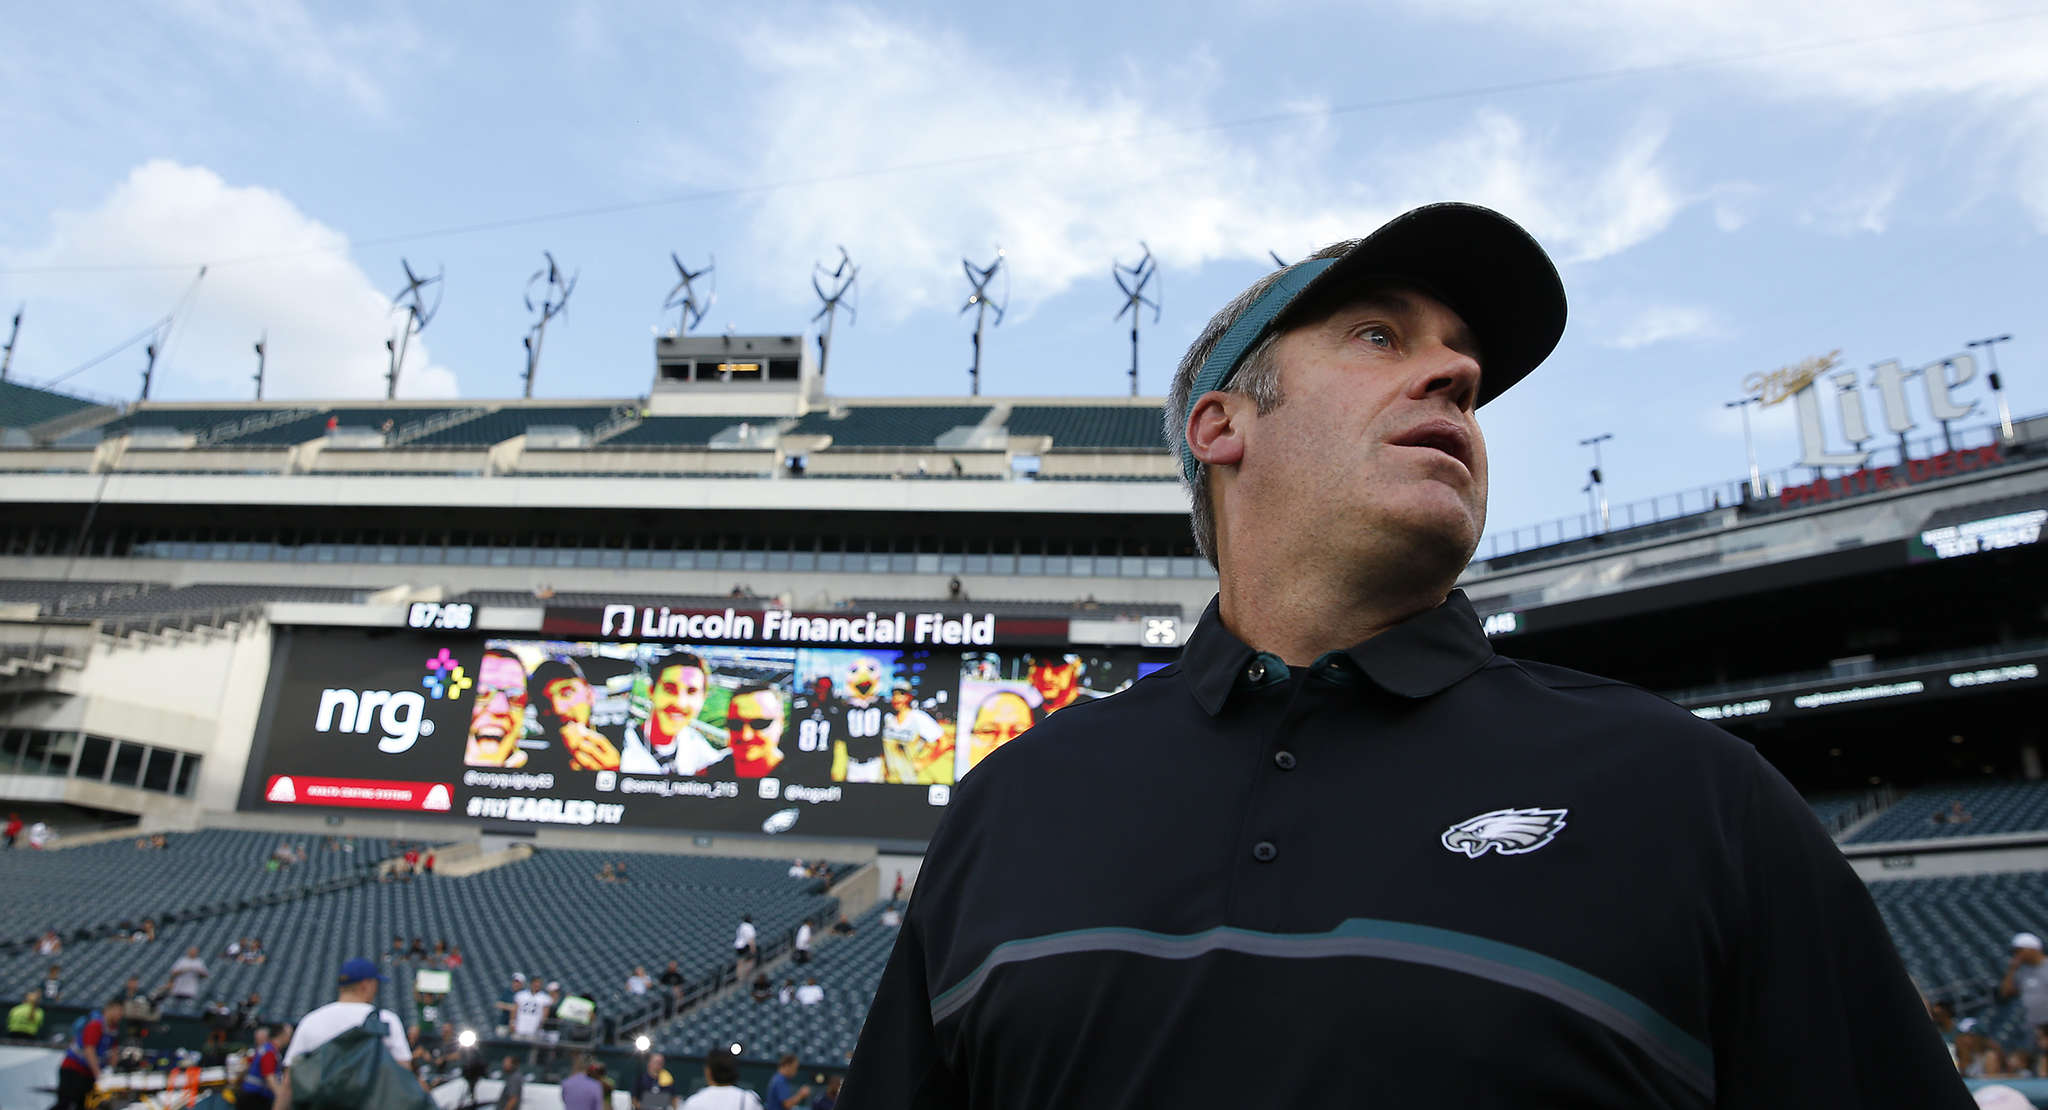 Eagles Doug Pederson takes the field during warmups before the preseason opener at Lincoln Financial Field against the Tampa Bay Buccaneers.